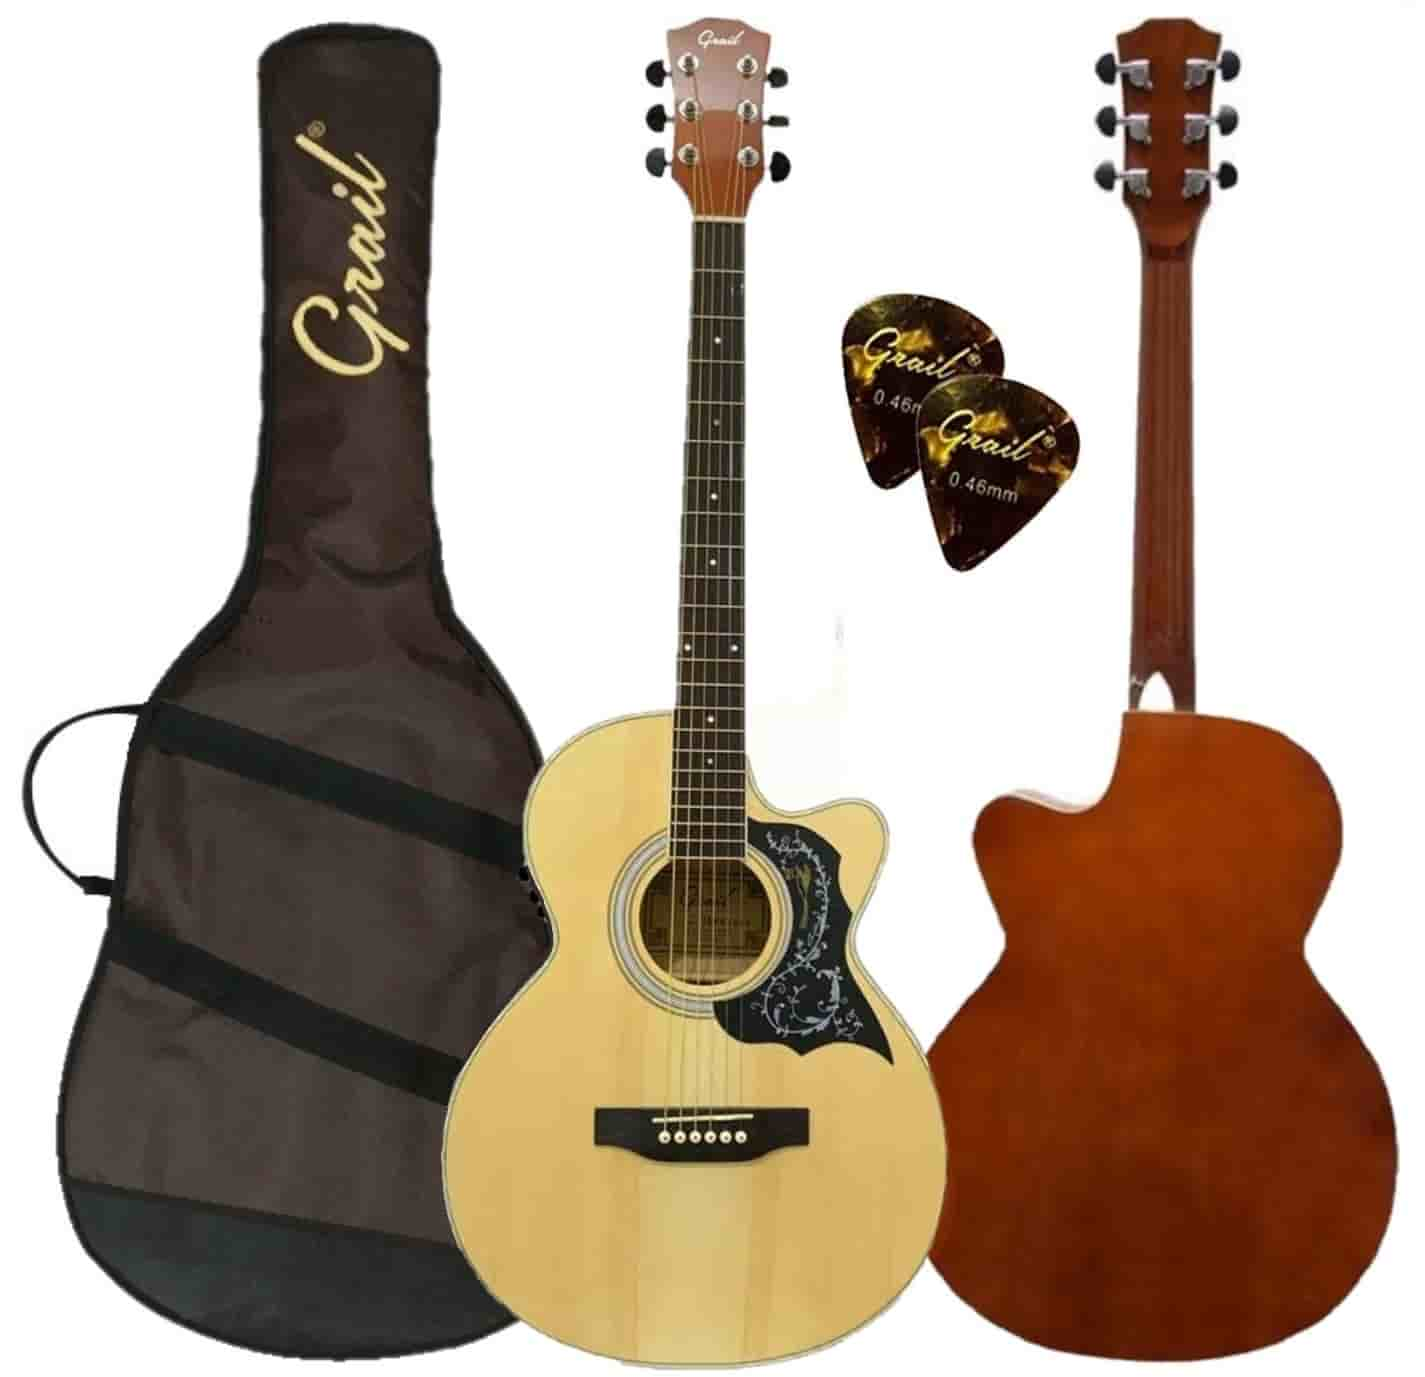 Grail Allure A190CE SP Semi Acoustic Guitar Cutaway Spruce Top (FREE Water Resistant Padded Gig Bag & 2 Picks)